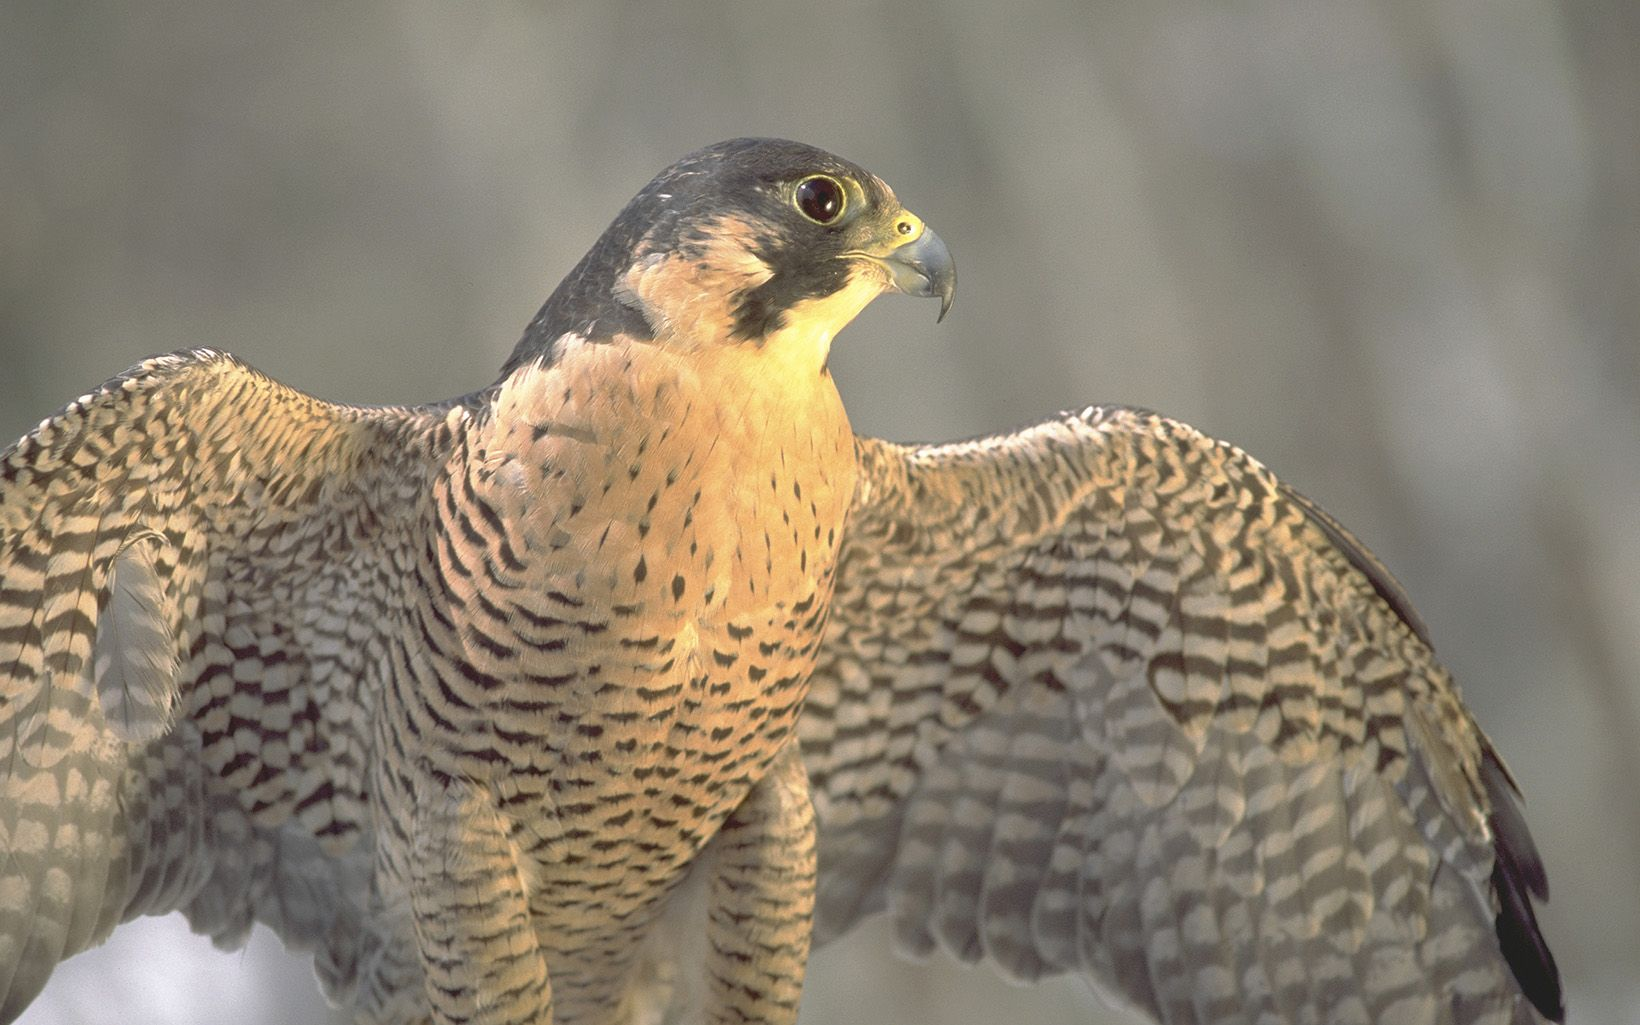 Peregrine falcon with wings spread.